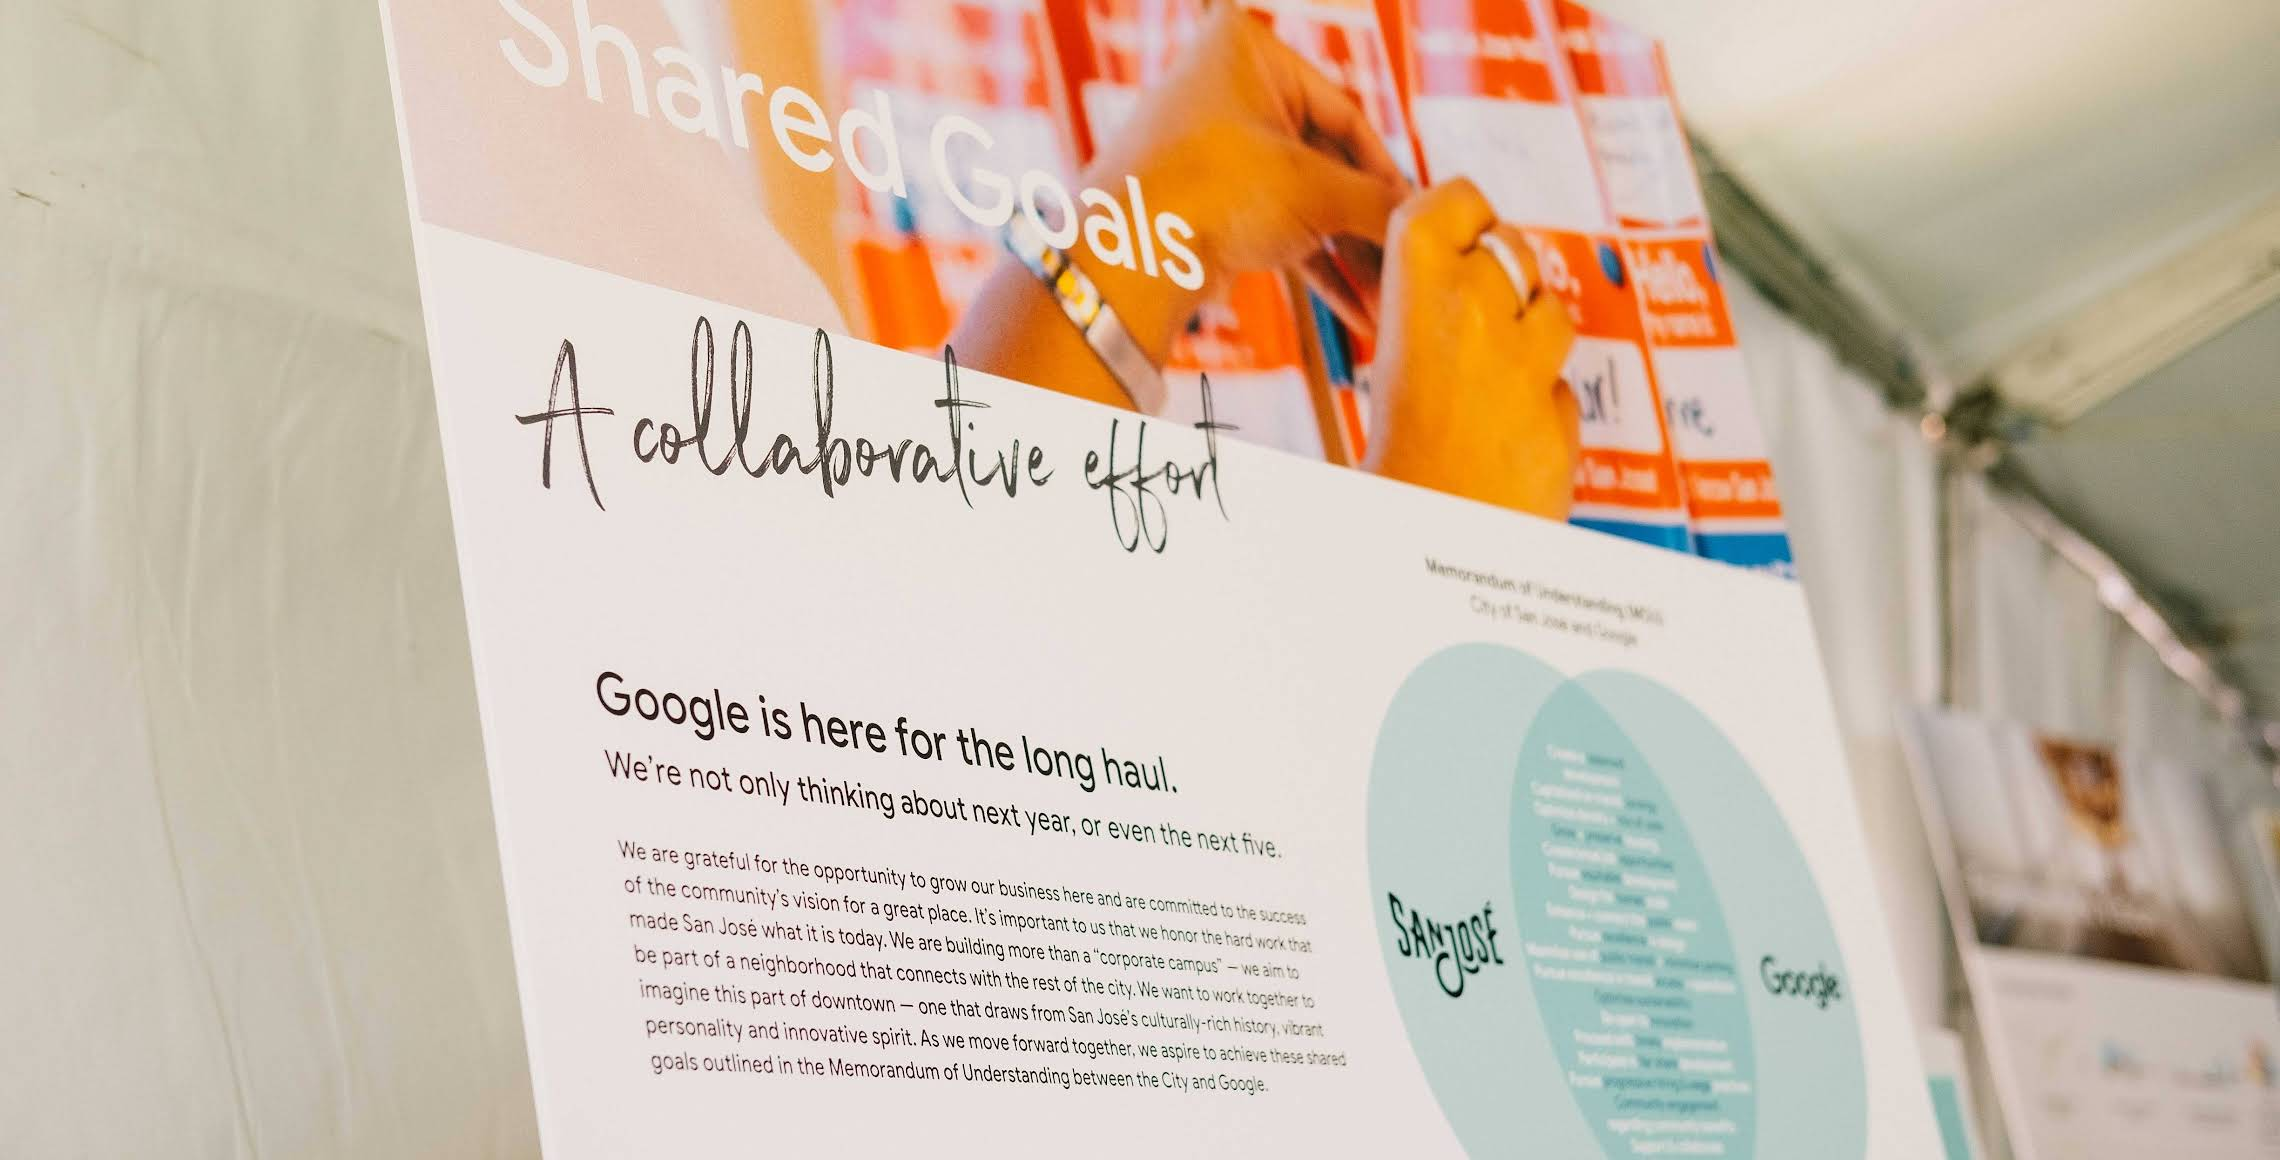 Shared goals of Google's preliminary plan.